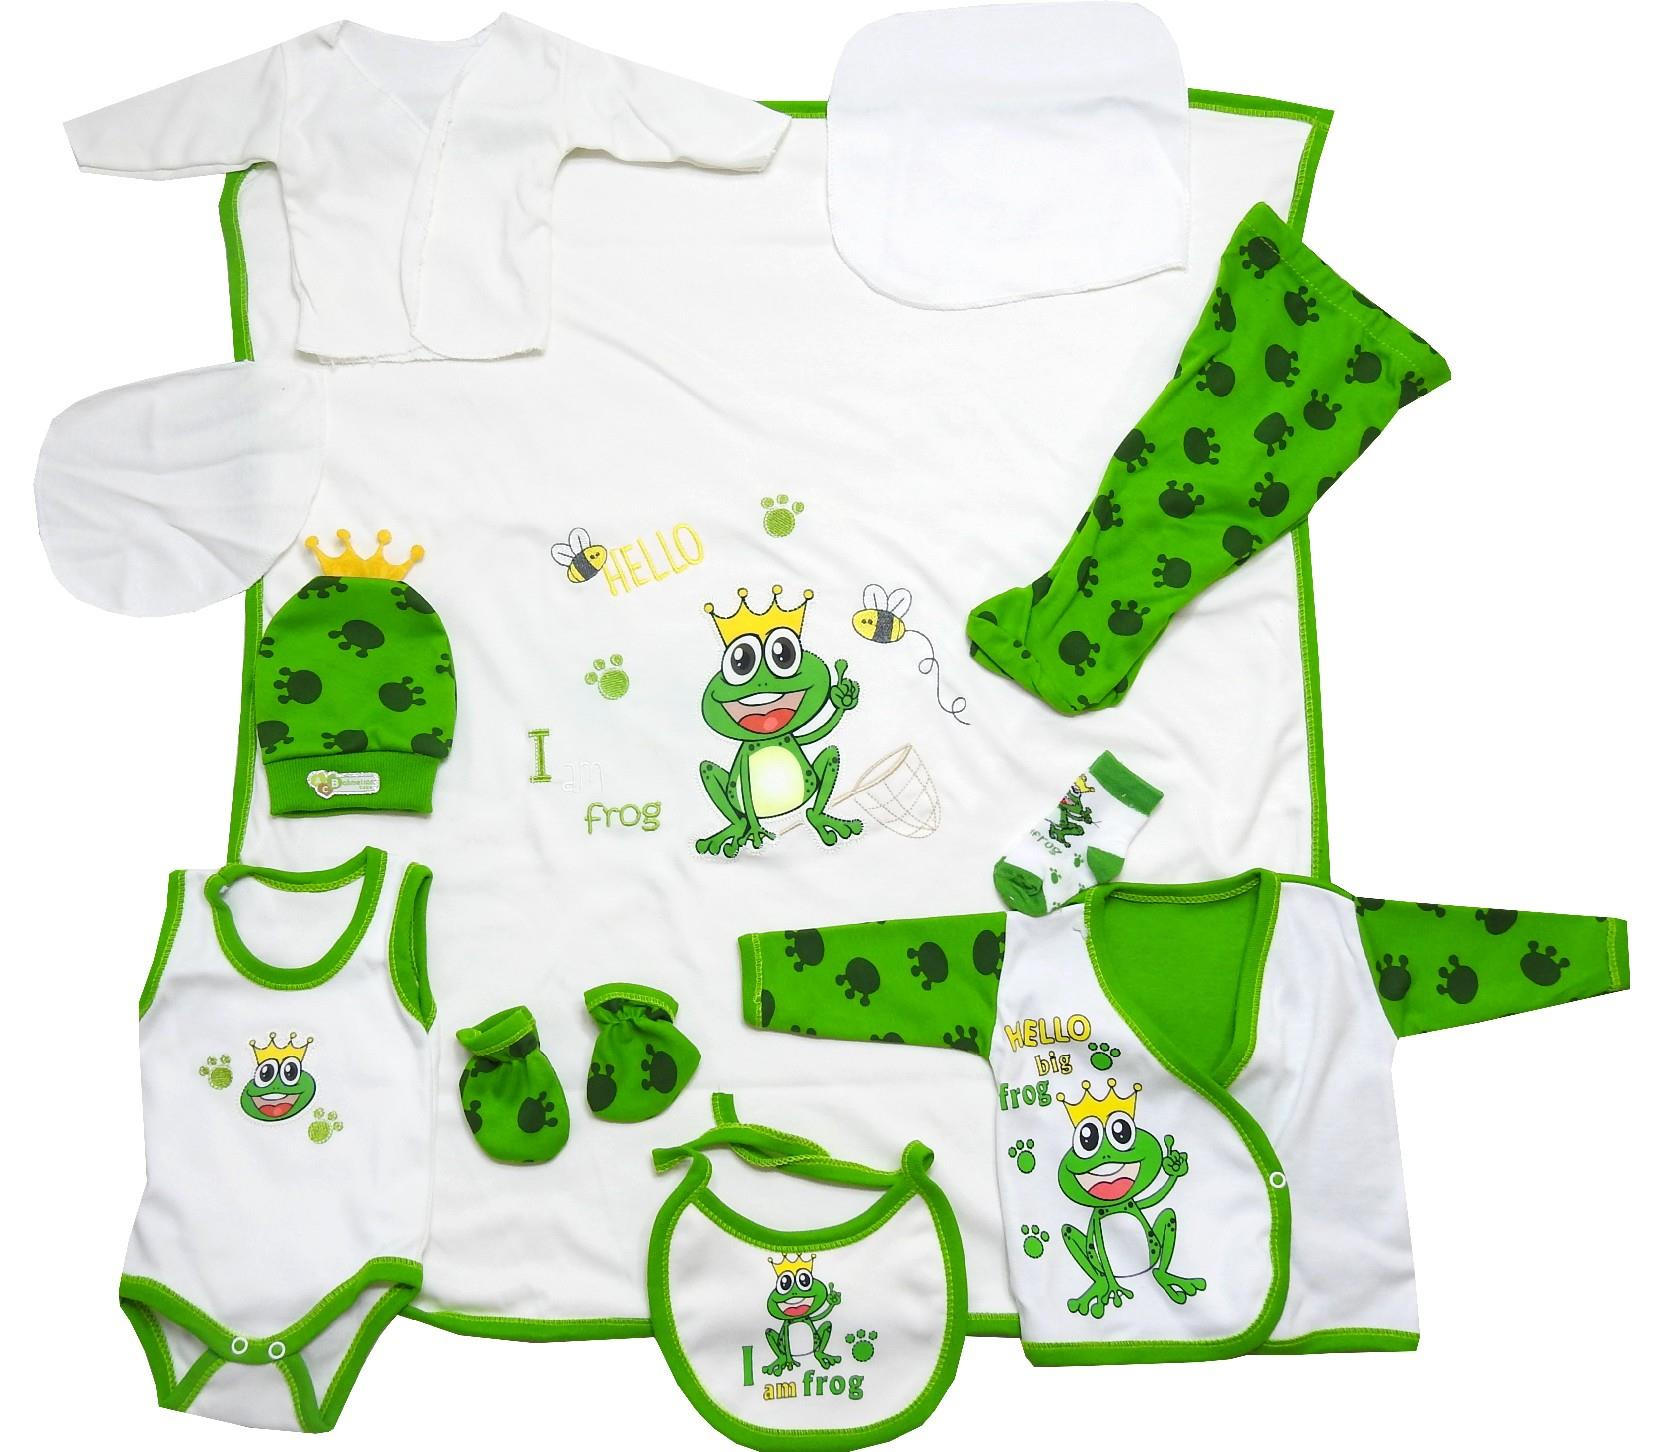 128 Wholesale printed design baby newborn set 11 pieces in package